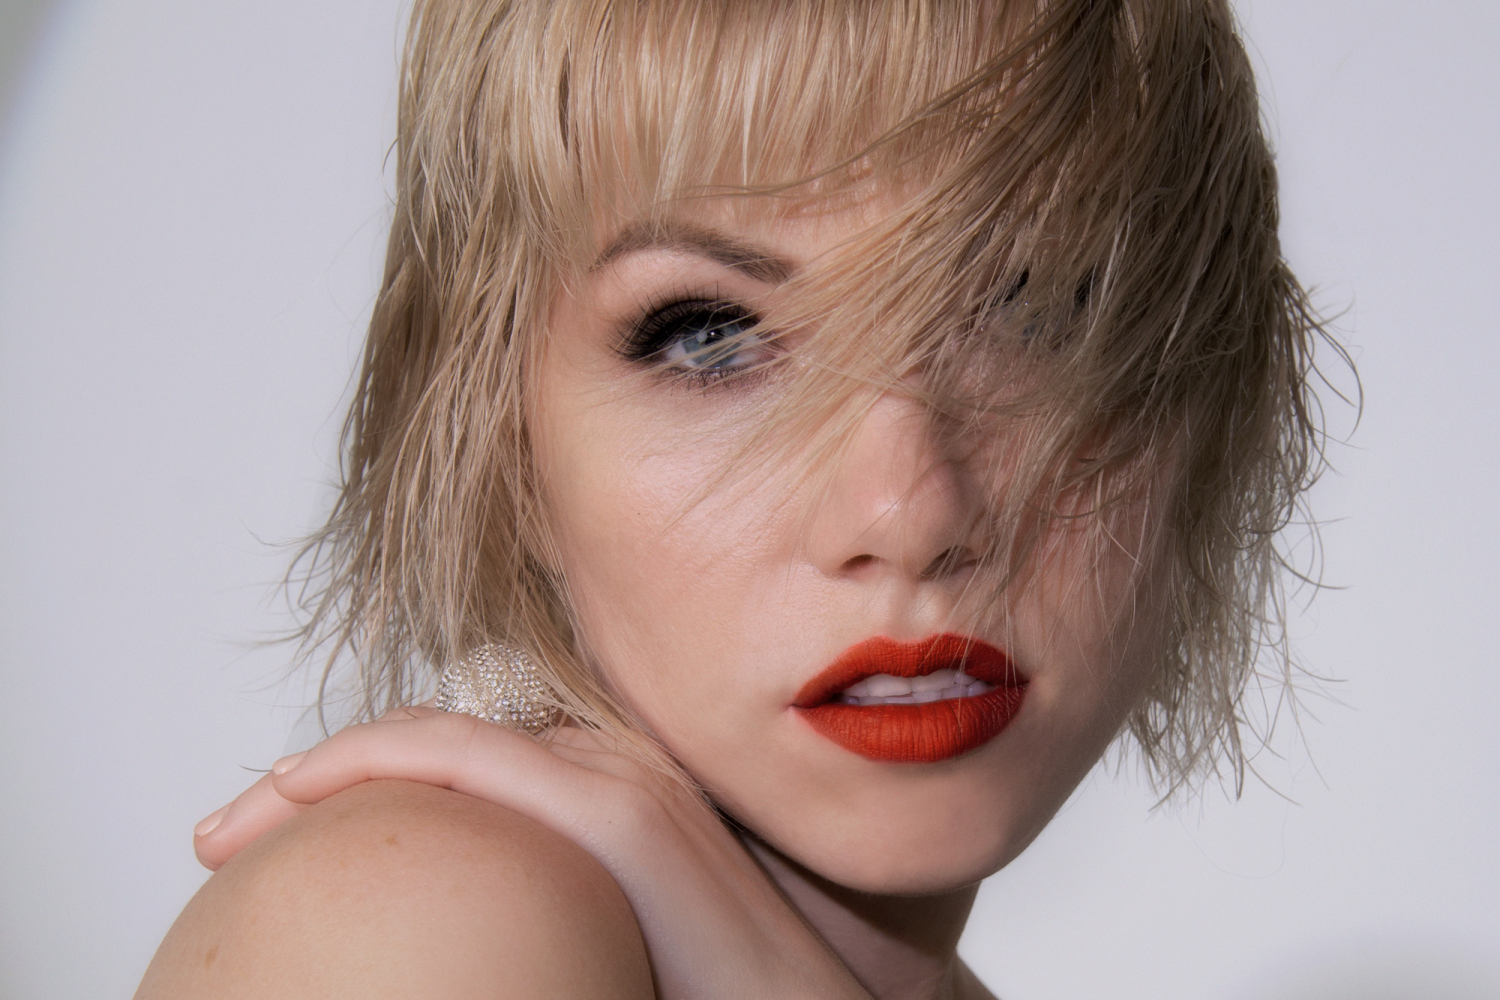 Dedicated: Side B — an album review and analysis of Carly Rae ...